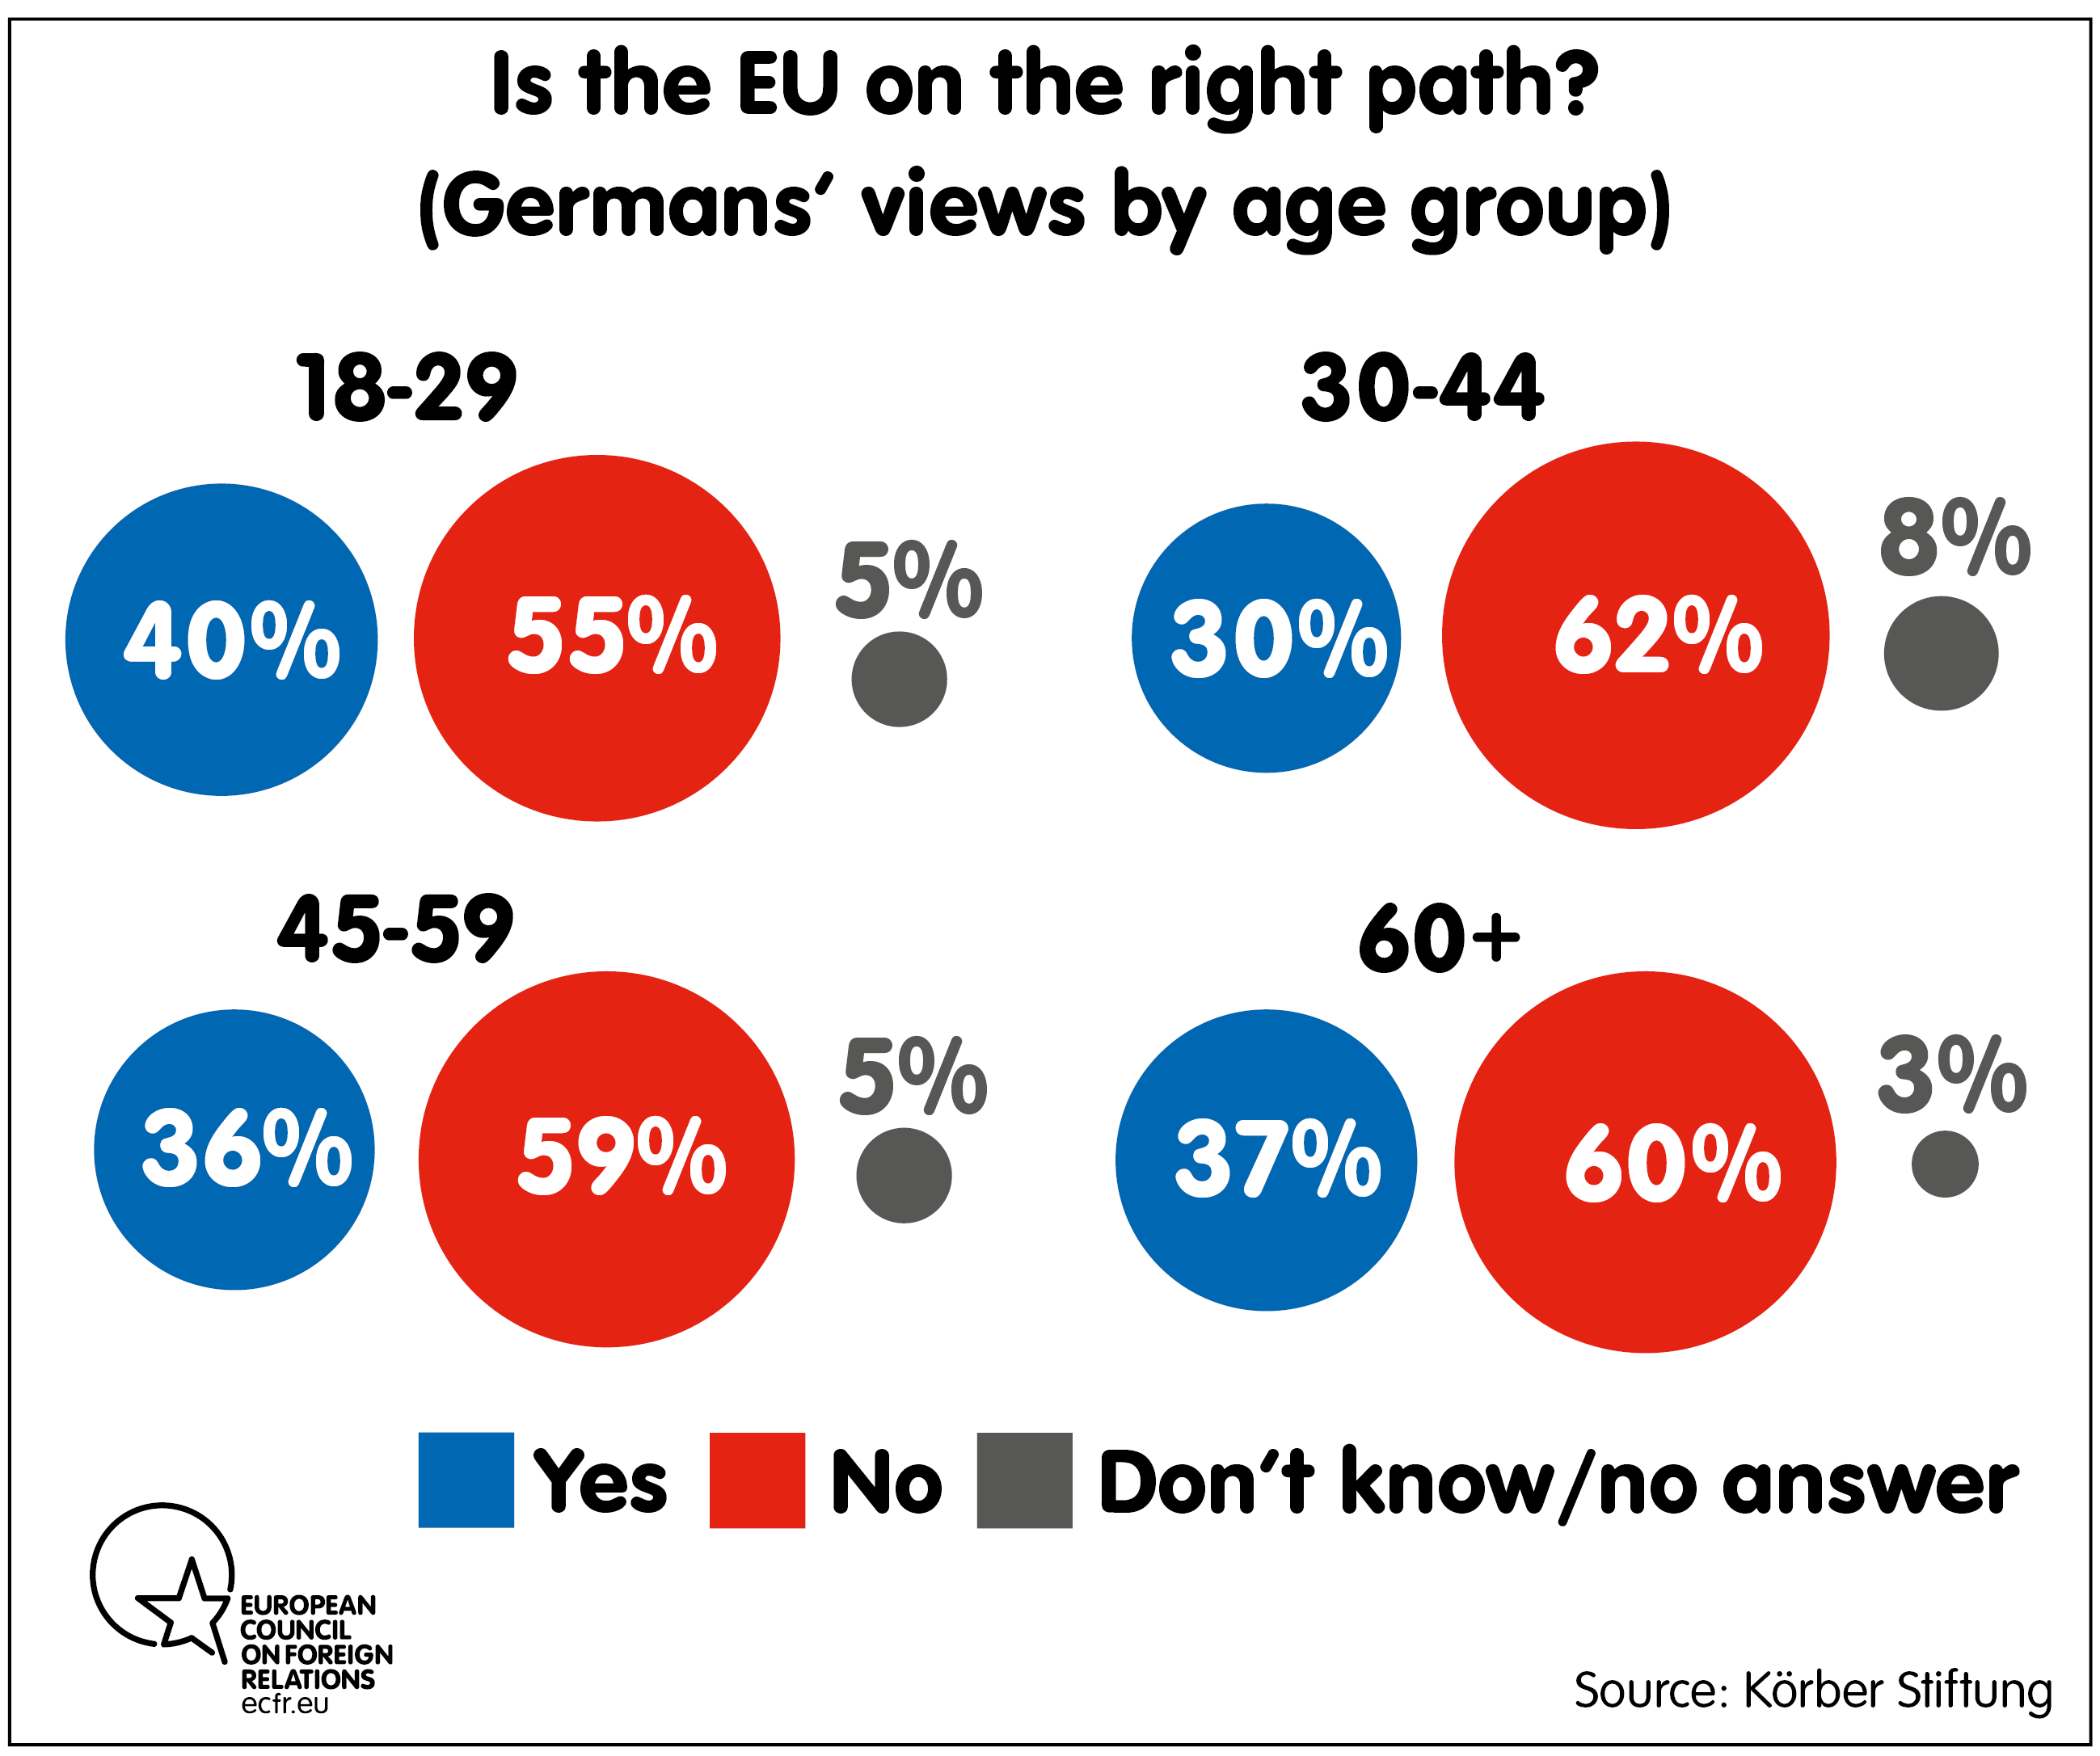 Is the EU on the right path? By age group